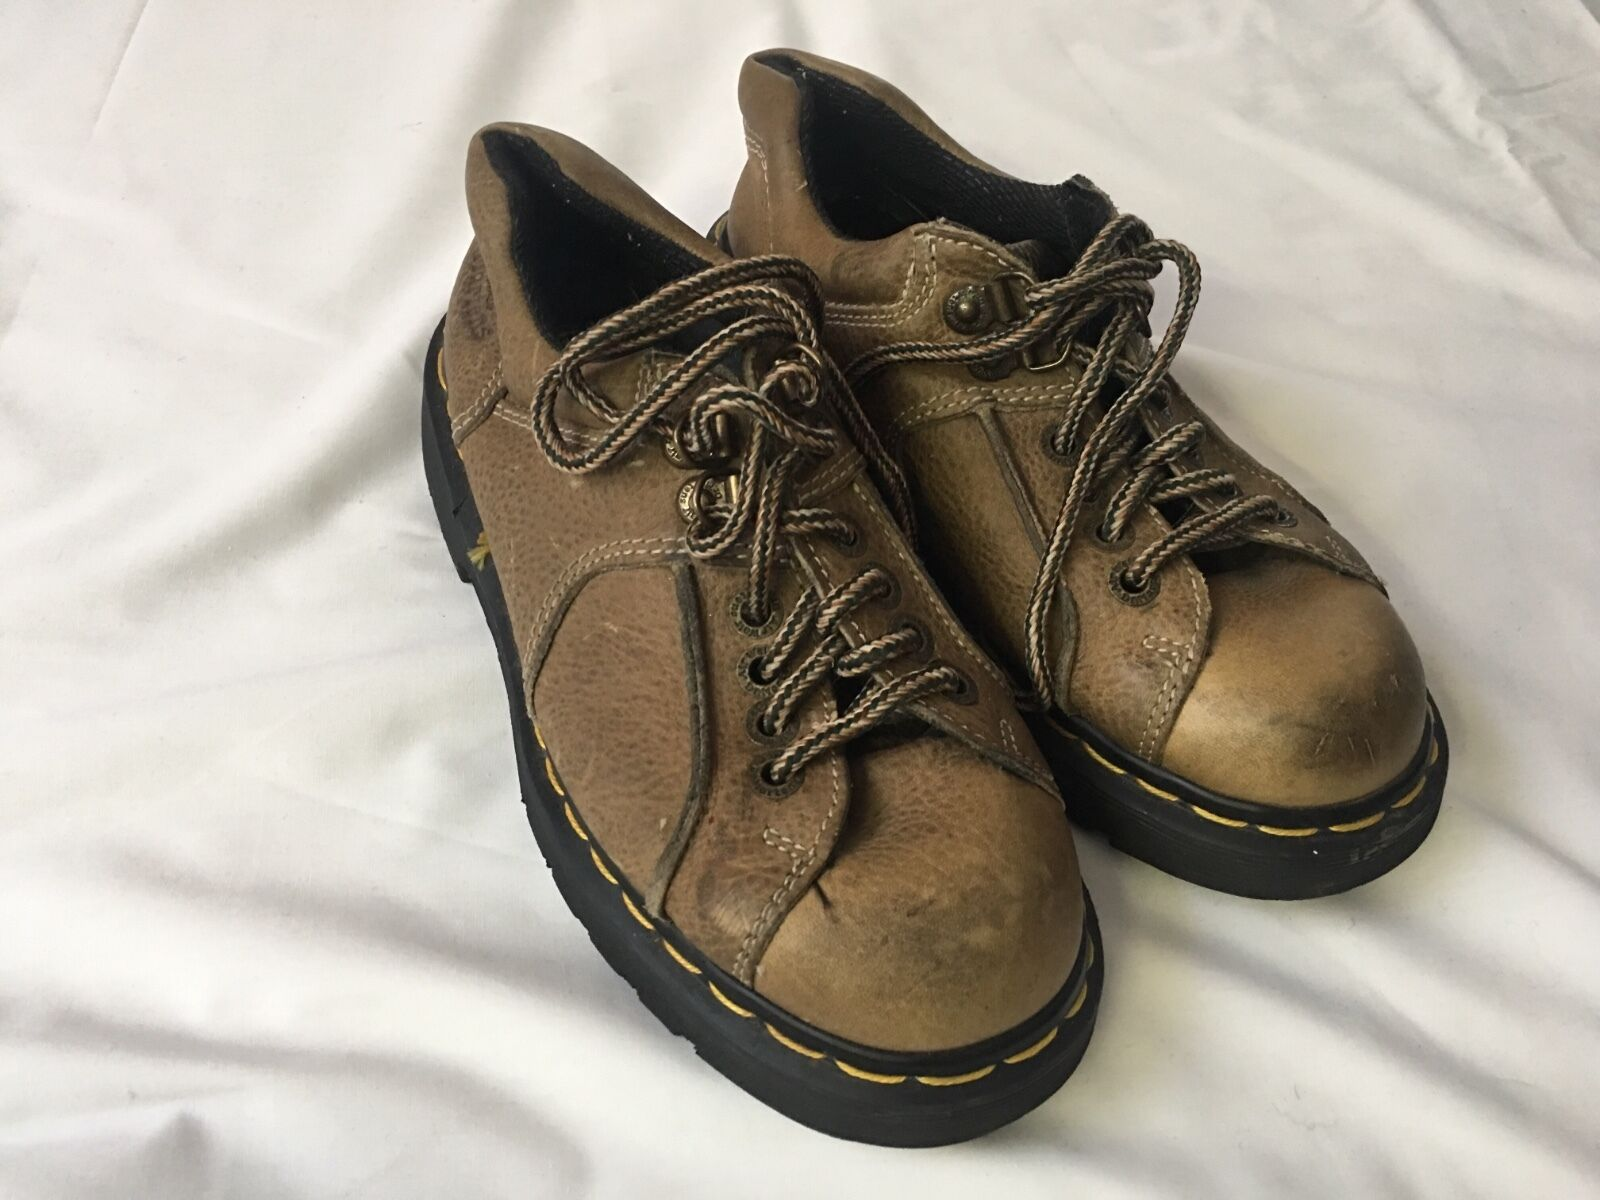 Dr. Martens DMs Air Cushion  Leather Oxford Casual Shoe UK5 US 7 punk goth rock